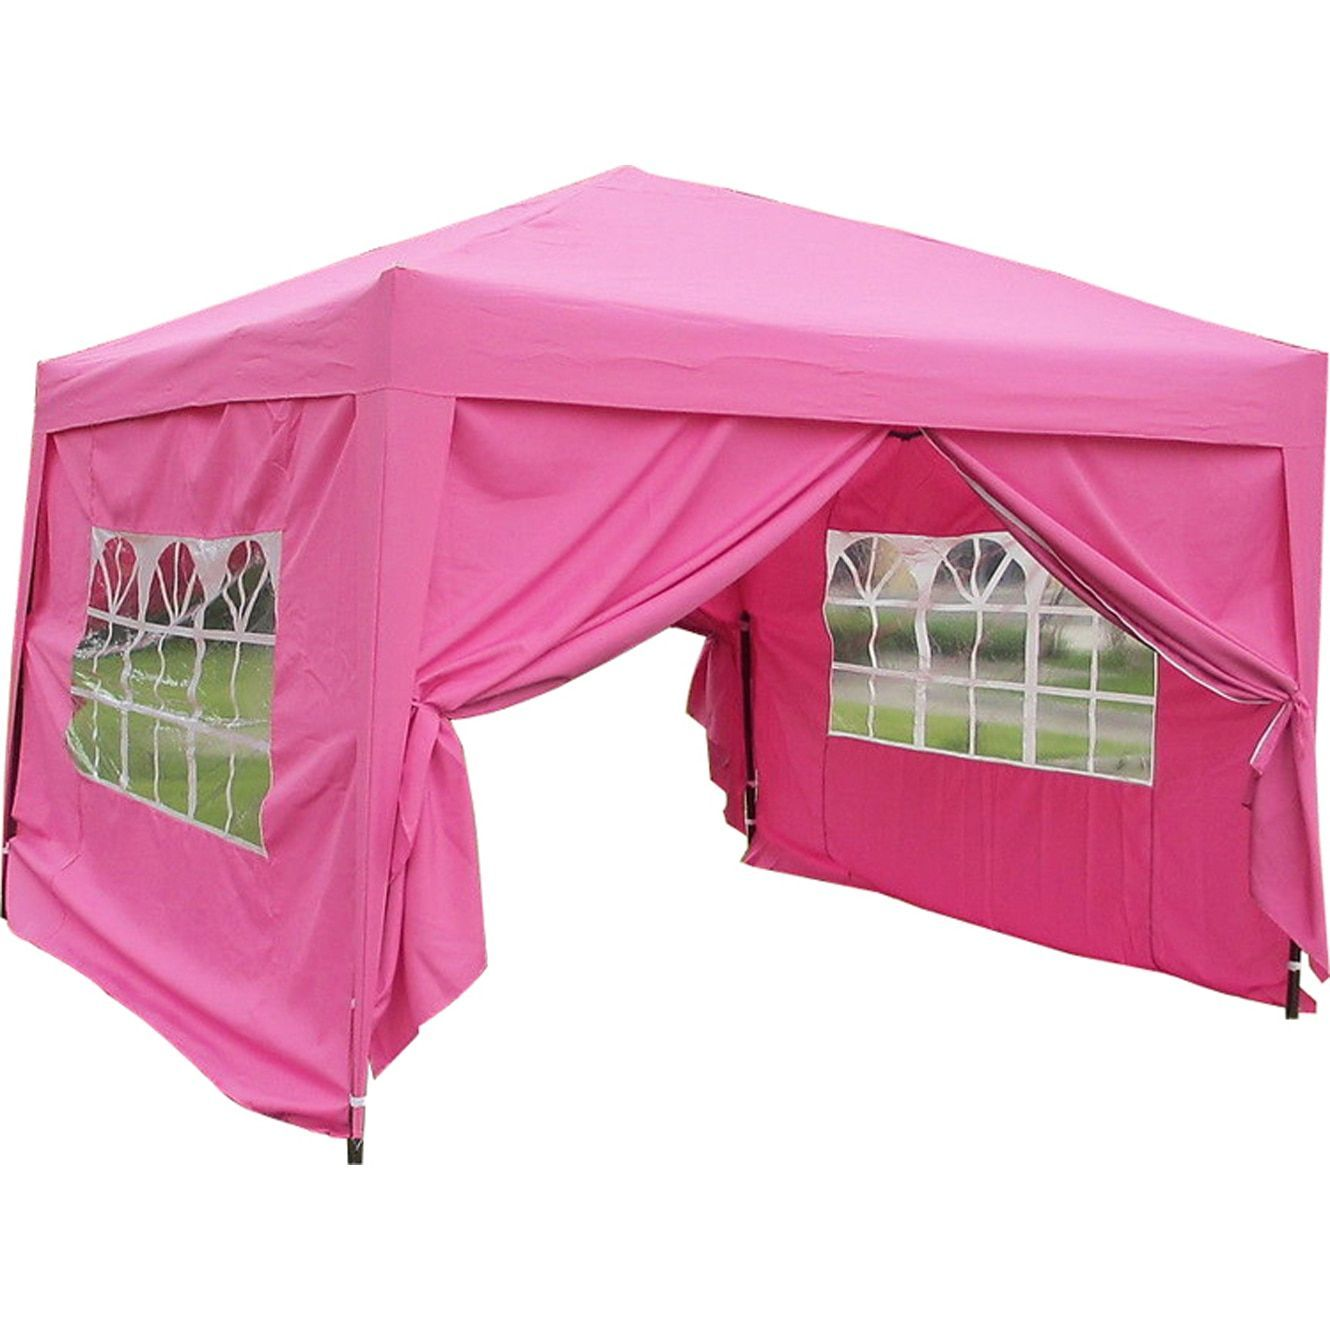 Mcombo 10x10 Ft Ez Pop Up 4 Walls Canopy Party Tent Gazebo With Sides Pink10 X10 Ezpop Up Canopy Tent Pink Size 10 X 10 Fabric 6051 Products Canop